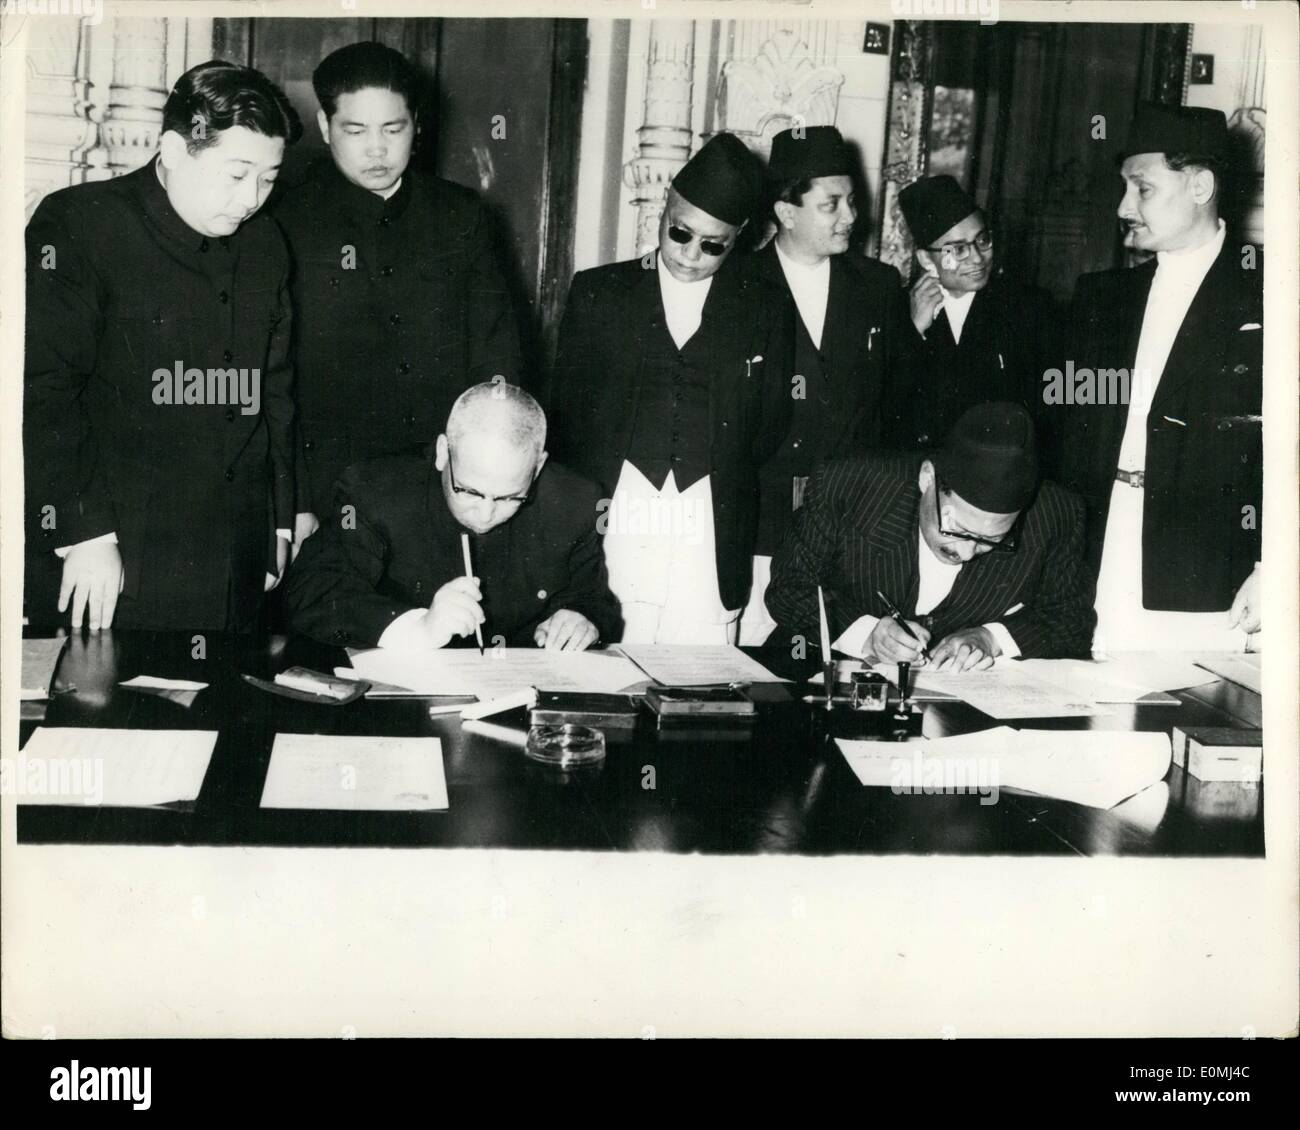 Aug. 08, 1955 - Establishment of Normal Diplomatic Relations Between Nepal And The People's Republic Of China: The State Hall of the government secretariat in Nepal - was the scene recently of signing articles for the establishment of normal diplomatic relations between Nepal and the People's Republic of China ... with the signing of the communique Nepal for the first time recognized Chinese ignty over Tibet with whom she (Nepal) has a five hundred mile long frontier. China is now the first communist country with which Nepal has normal diplomatic relation - Stock Image